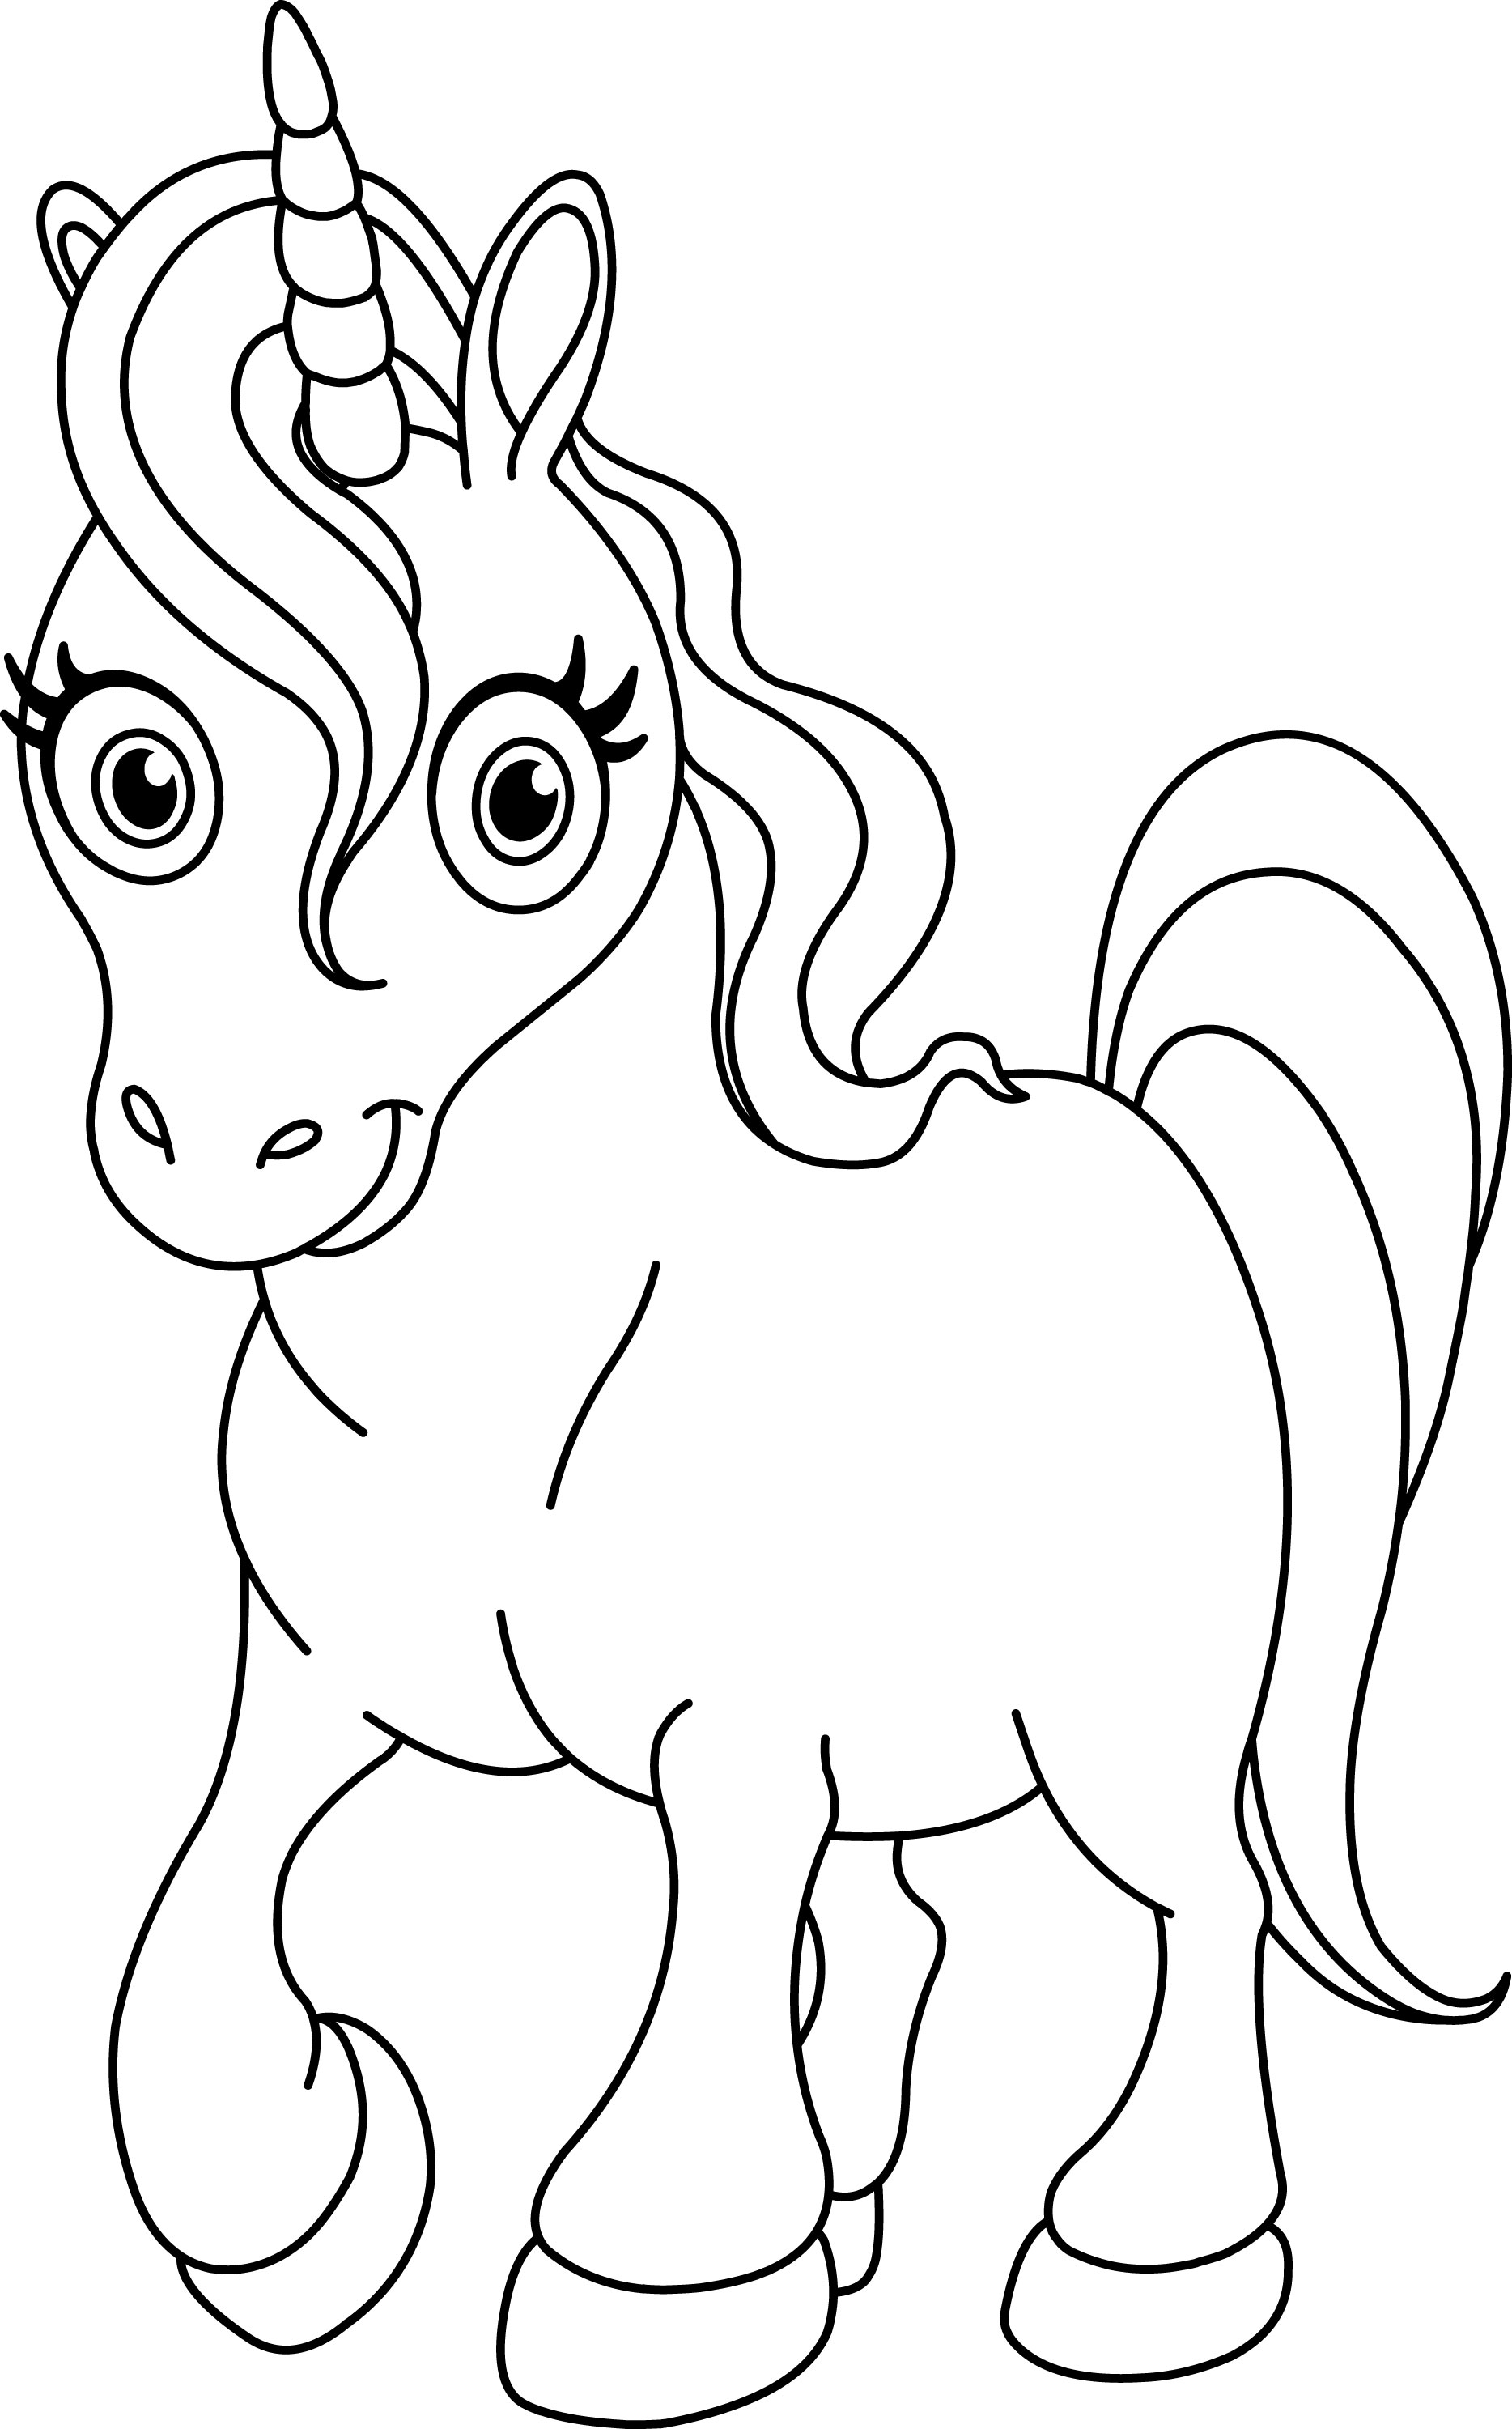 unicorn print out unicorn coloring pages to download and print for free print unicorn out 1 1